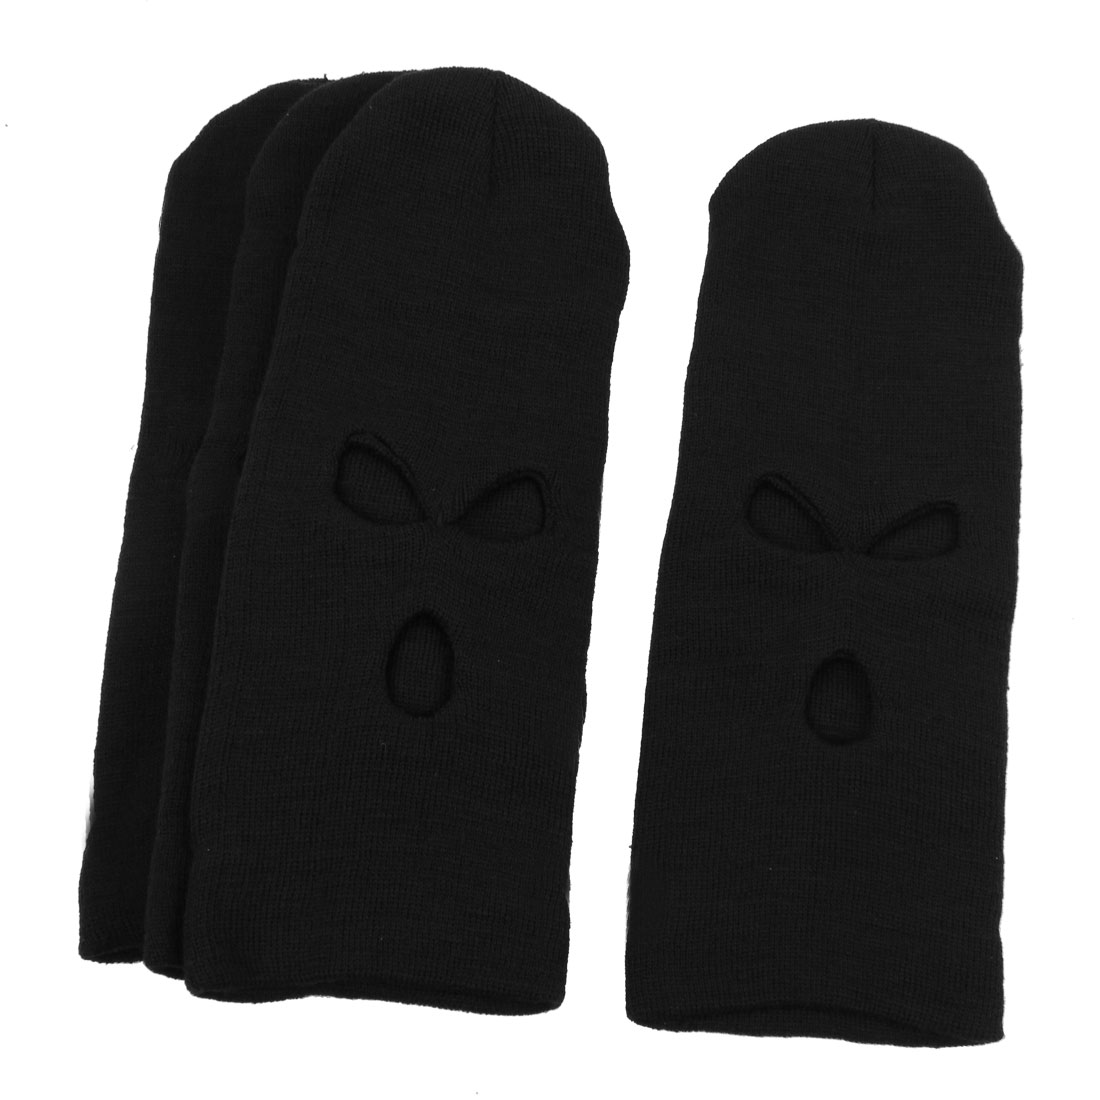 Ski Motorcycle Winter Thermal Balaclava Full Face Neck Knitted Hat Black 4PCS